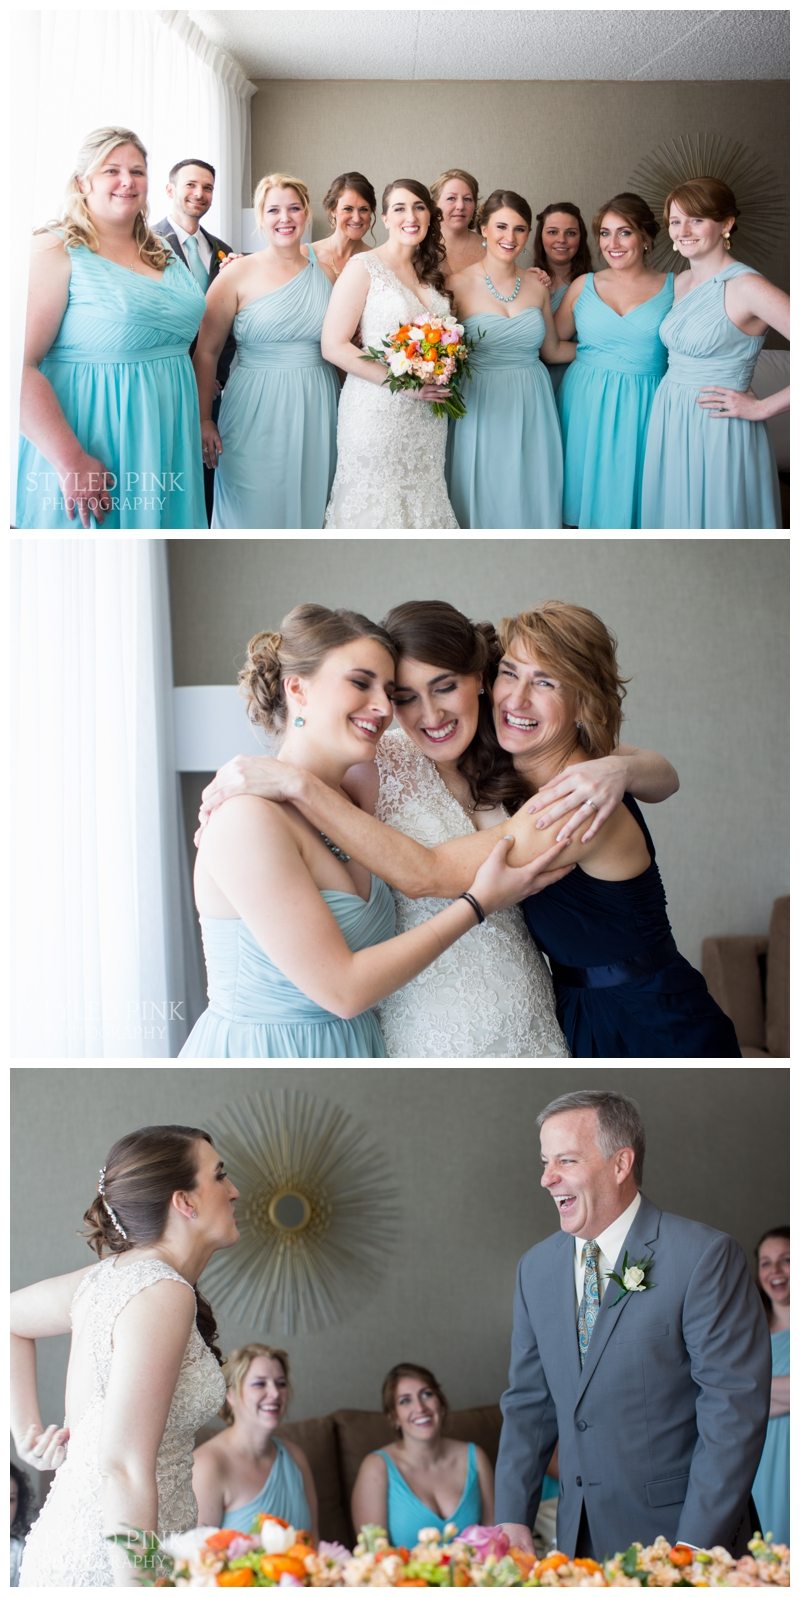 Brittany's dad had such an awesome reaction- I so love daddy/daughter first looks!